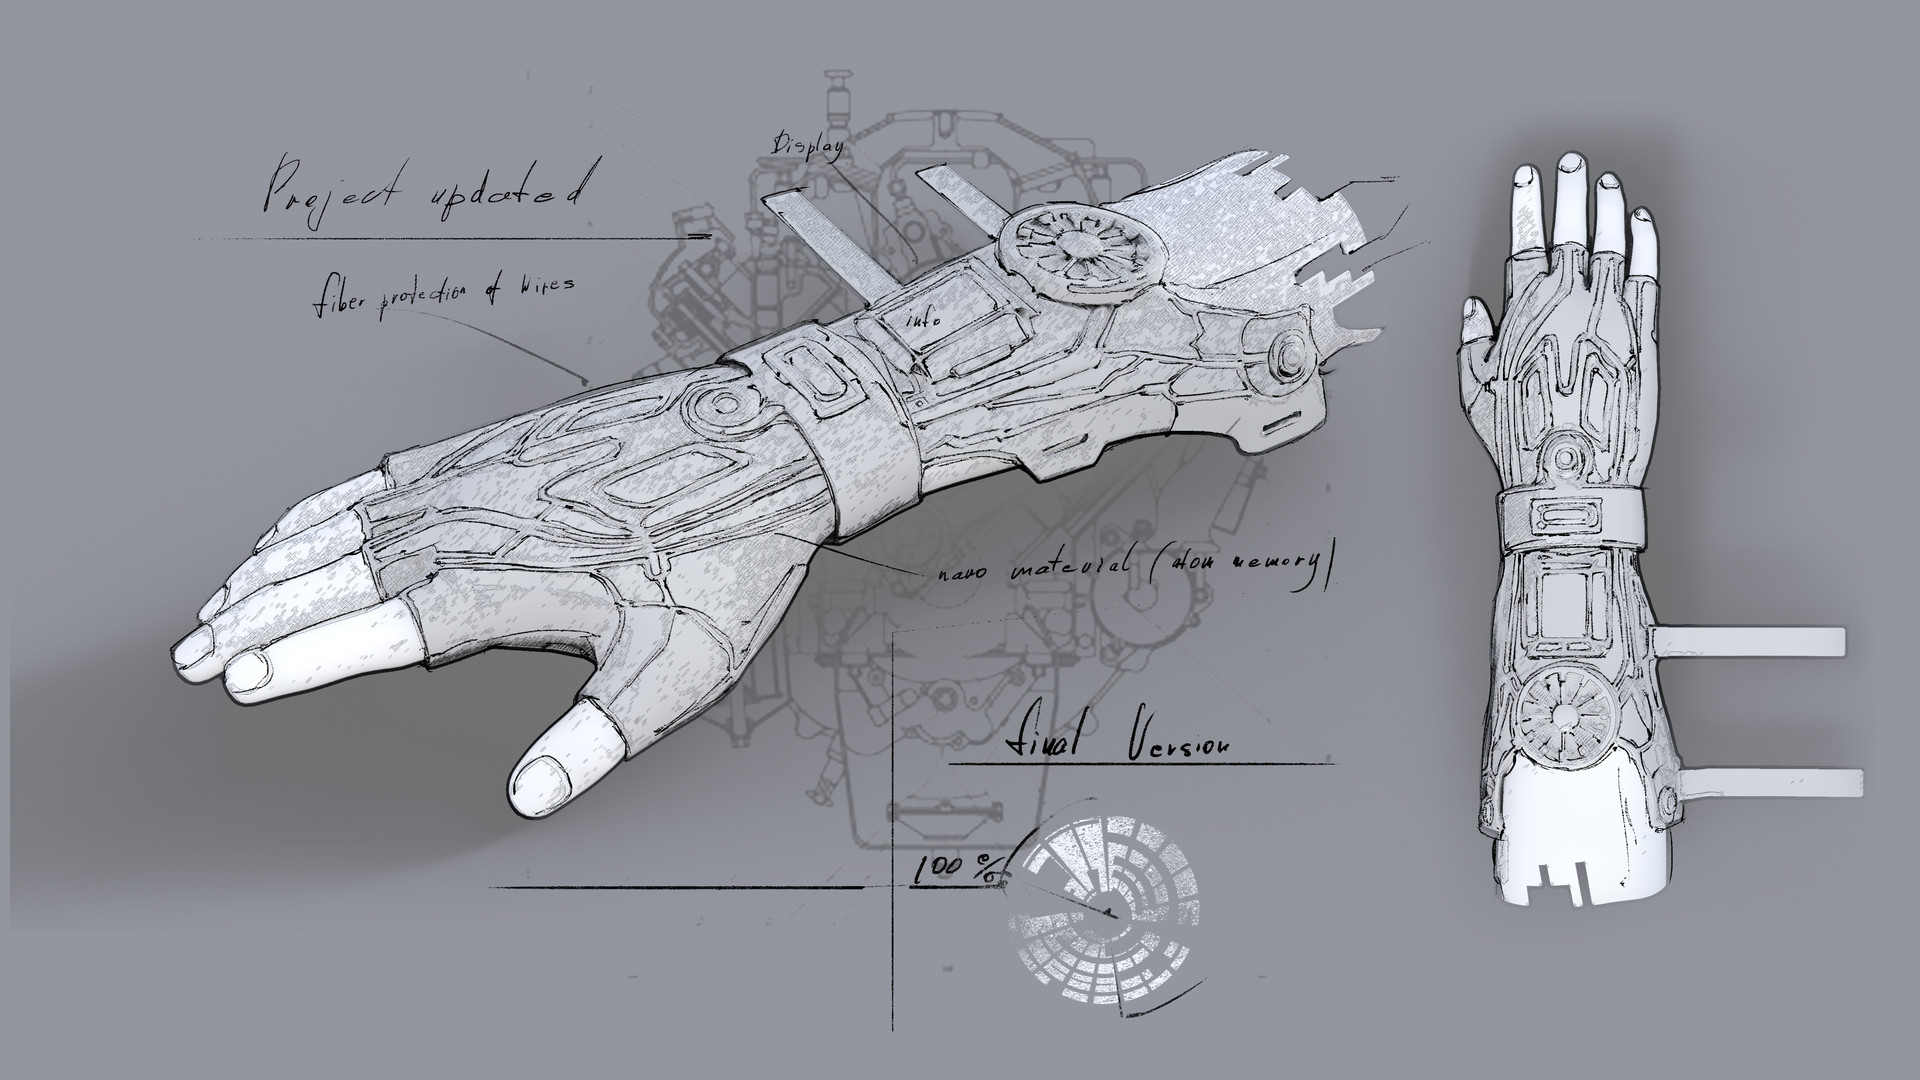 Sergey musin glowe controller sketch corrections 05 final